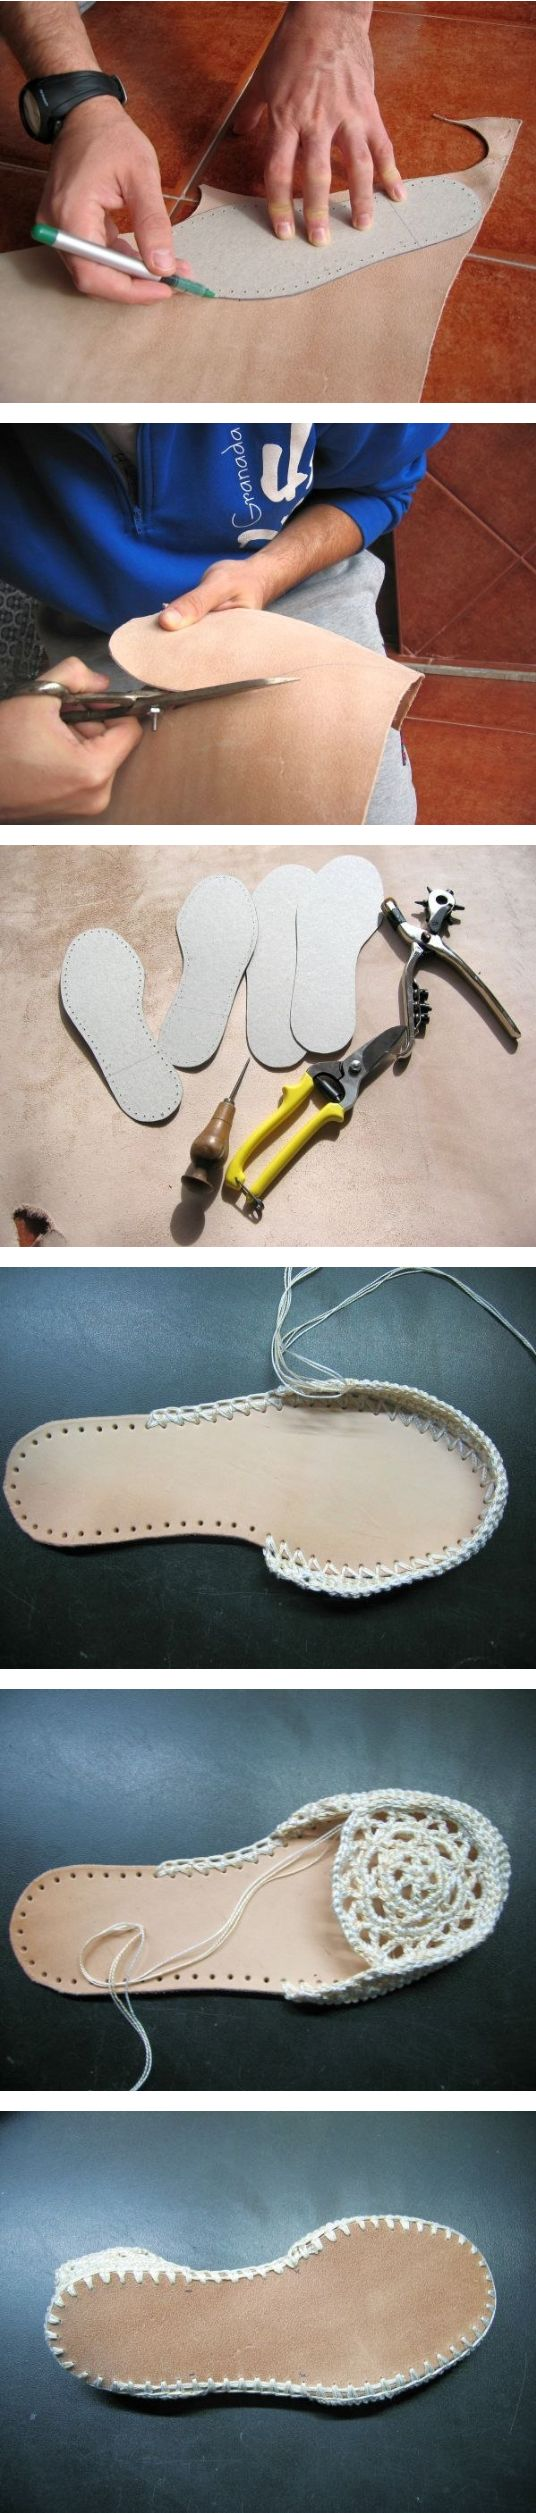 crocheted sandals on leather soles